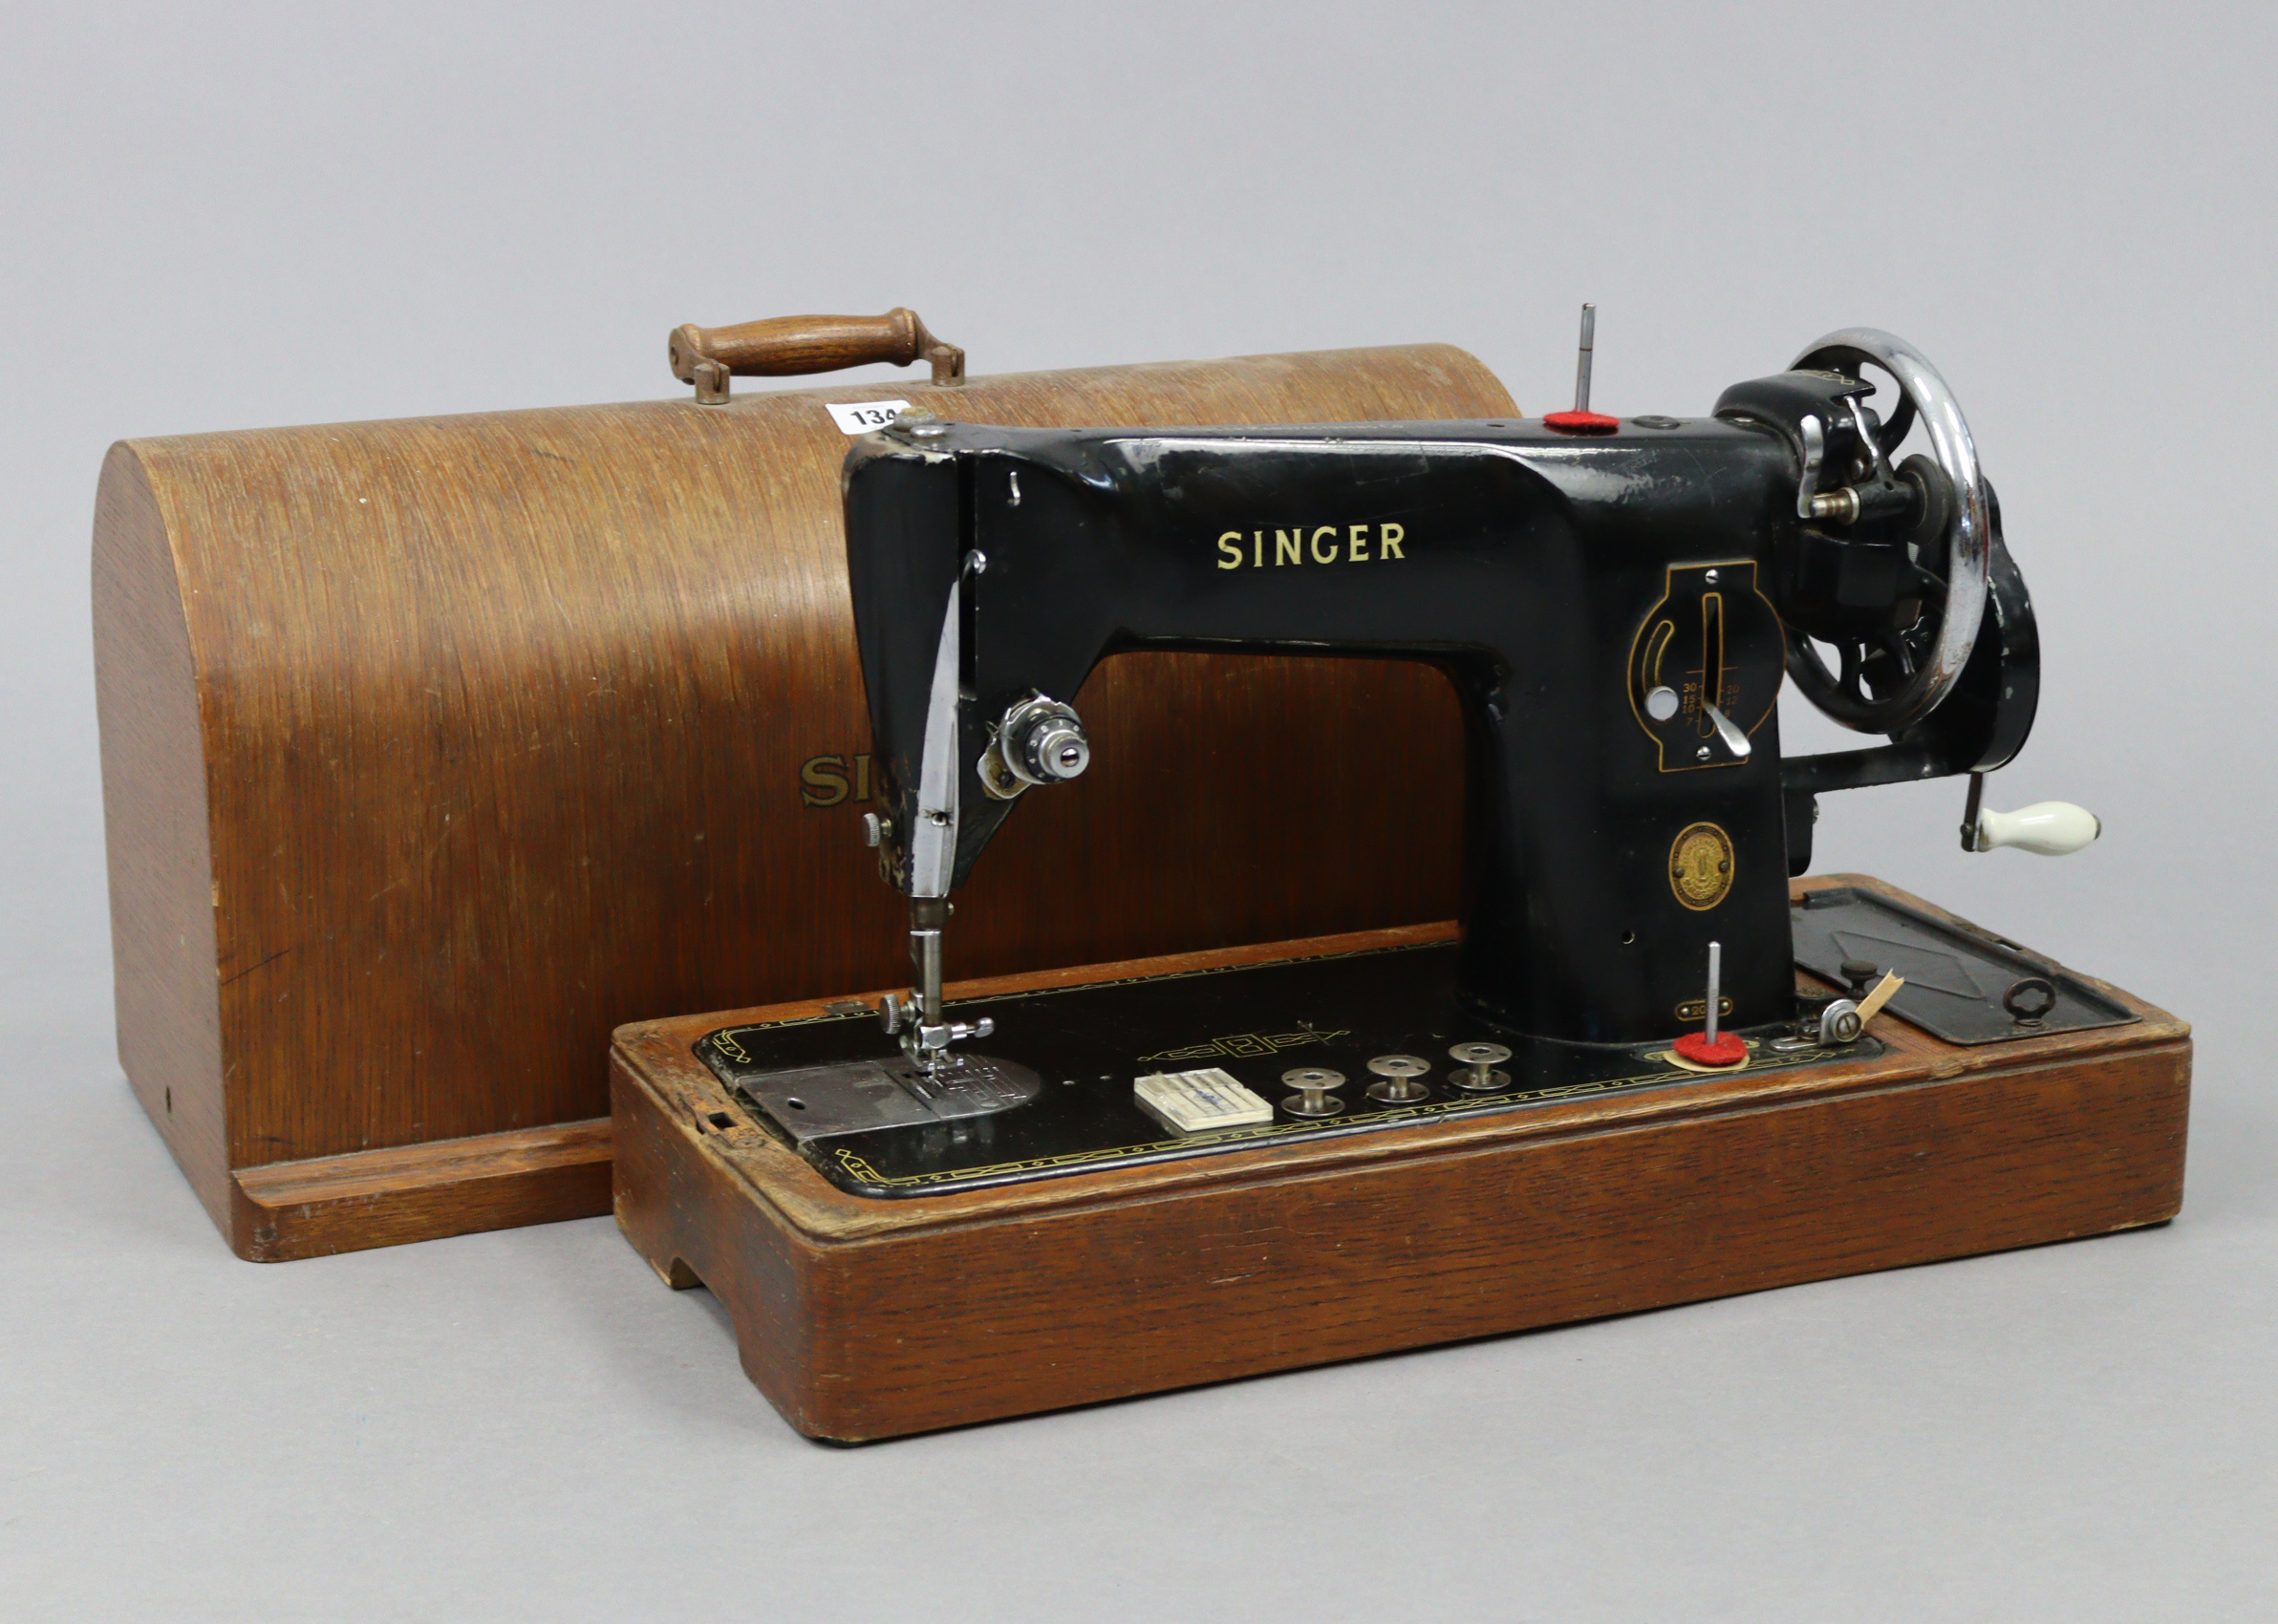 A Singer hand sewing machine with oak case.